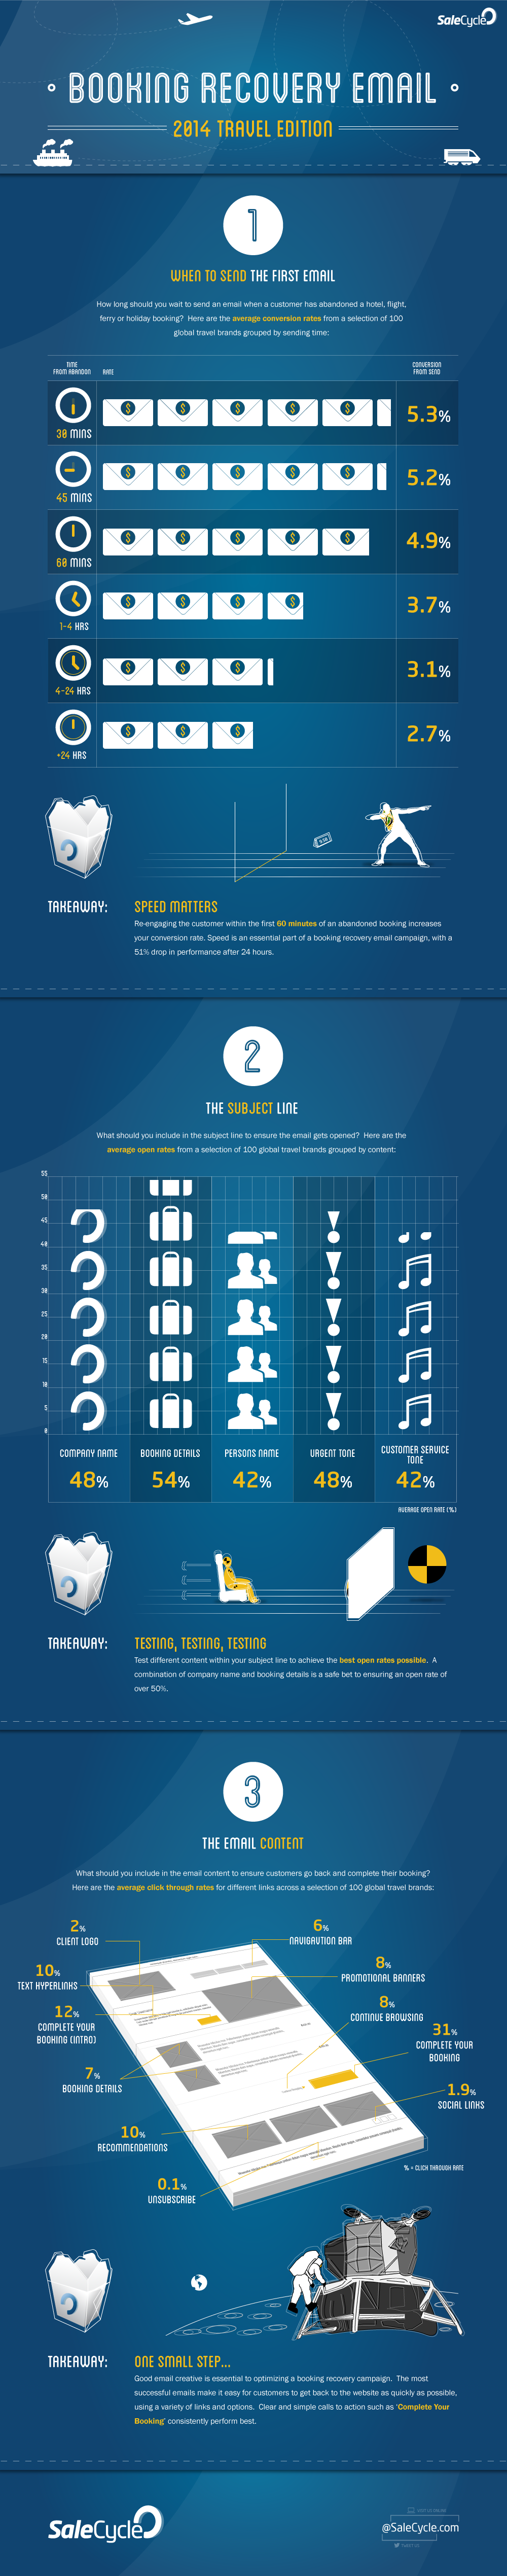 Infographic - Booking Recovery Email Travel 2014